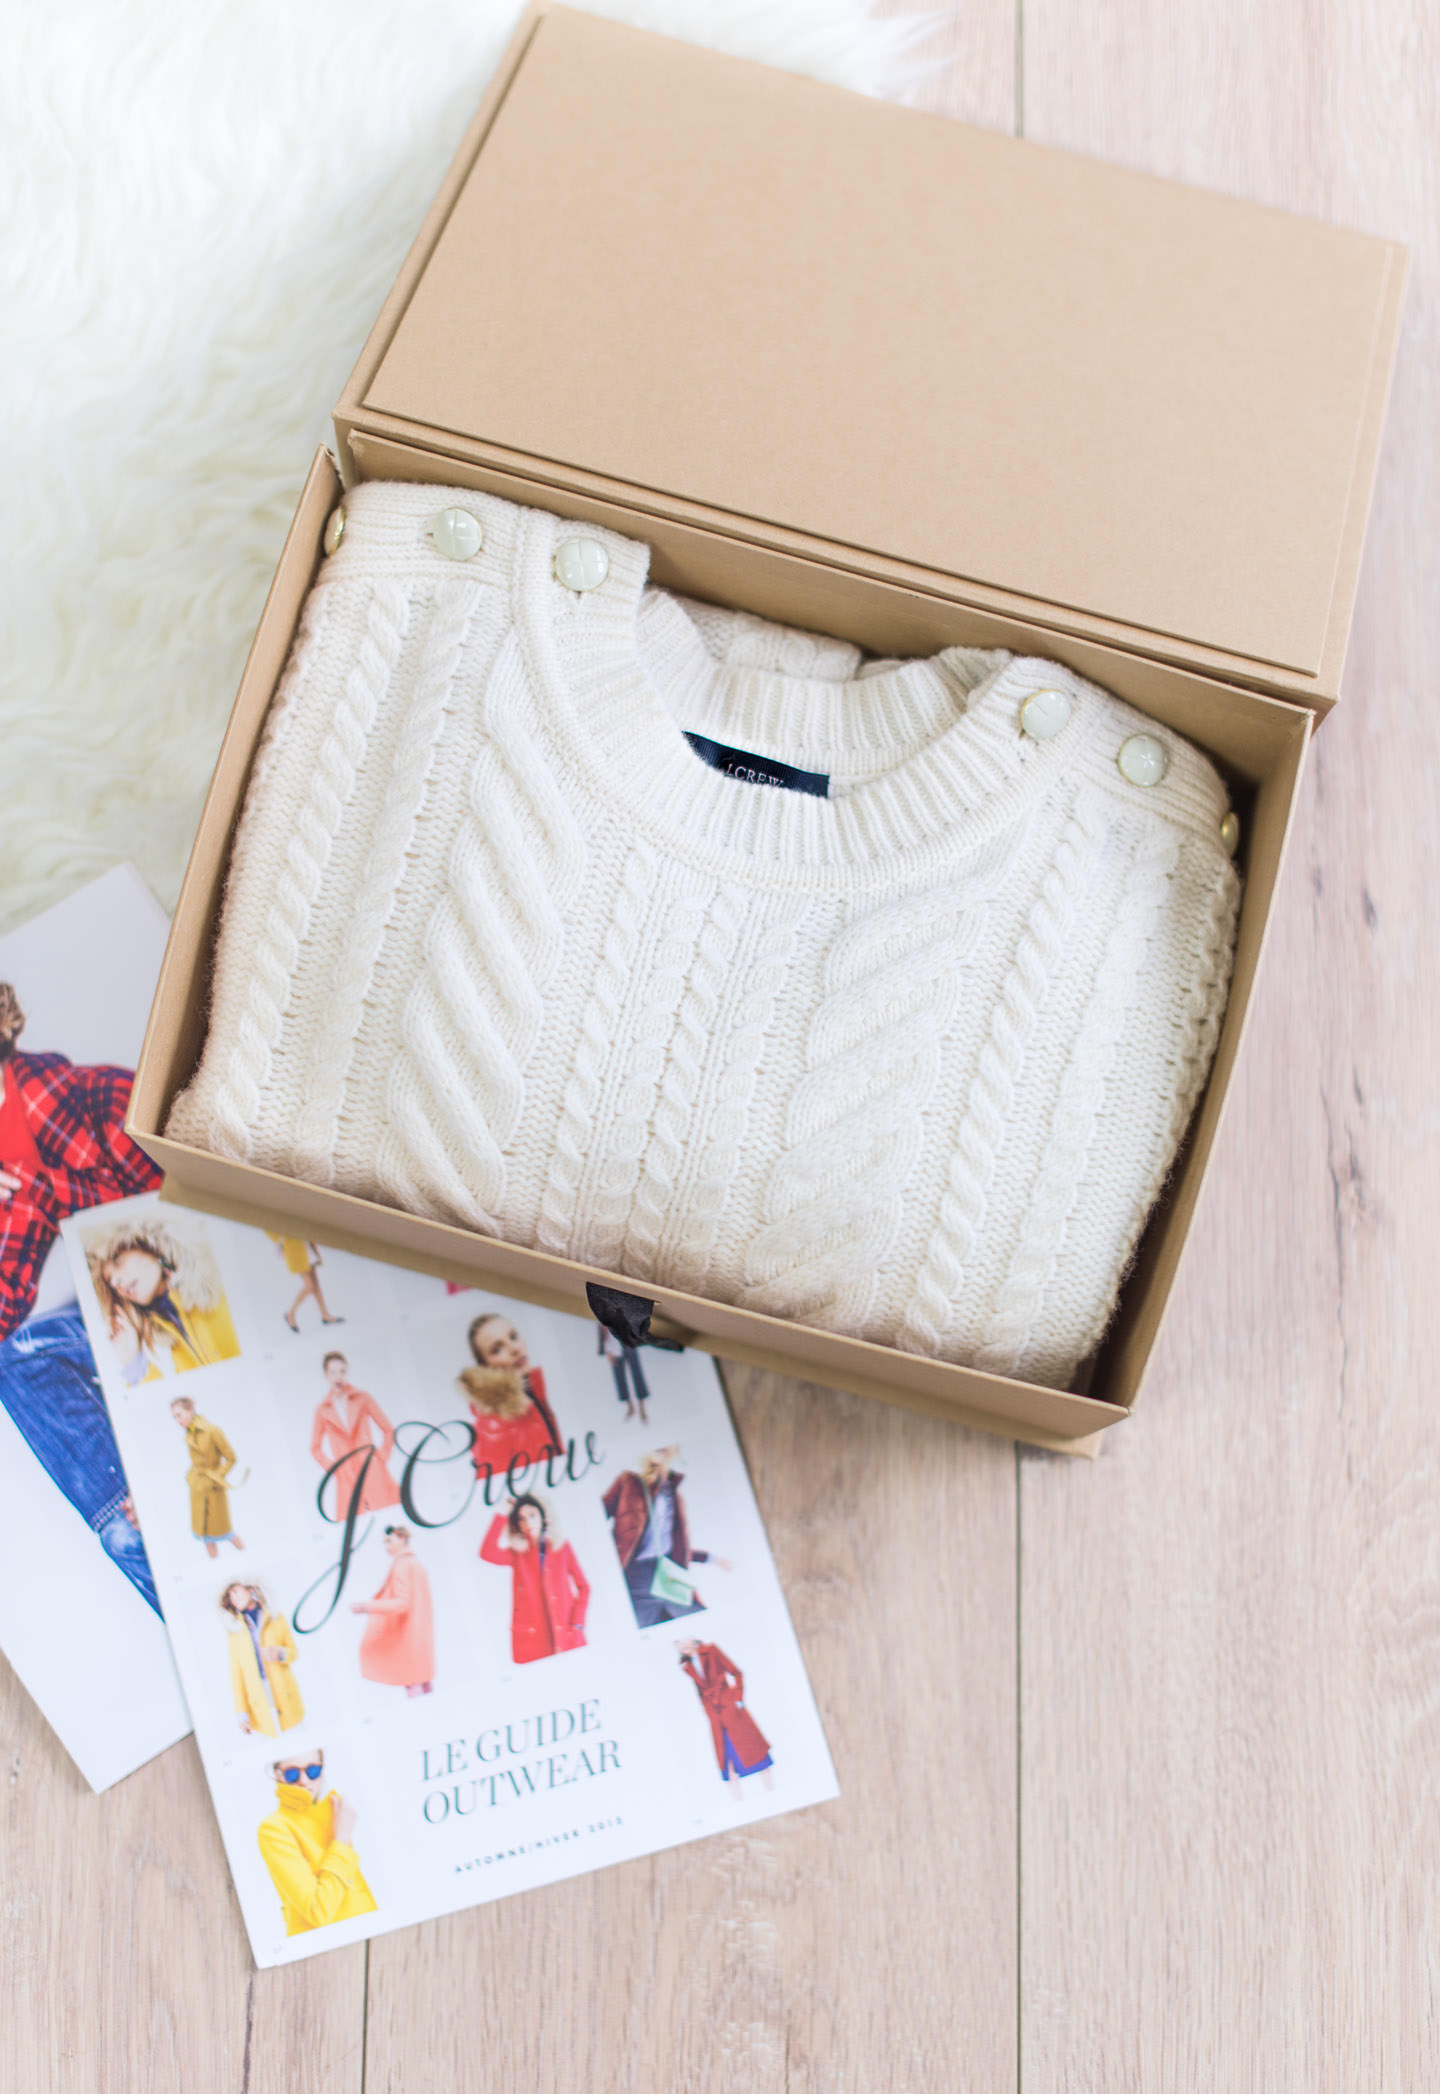 Blog-Mode-And-The-City-Lifestyle-Cadeaux-Noel-pull-jcrew